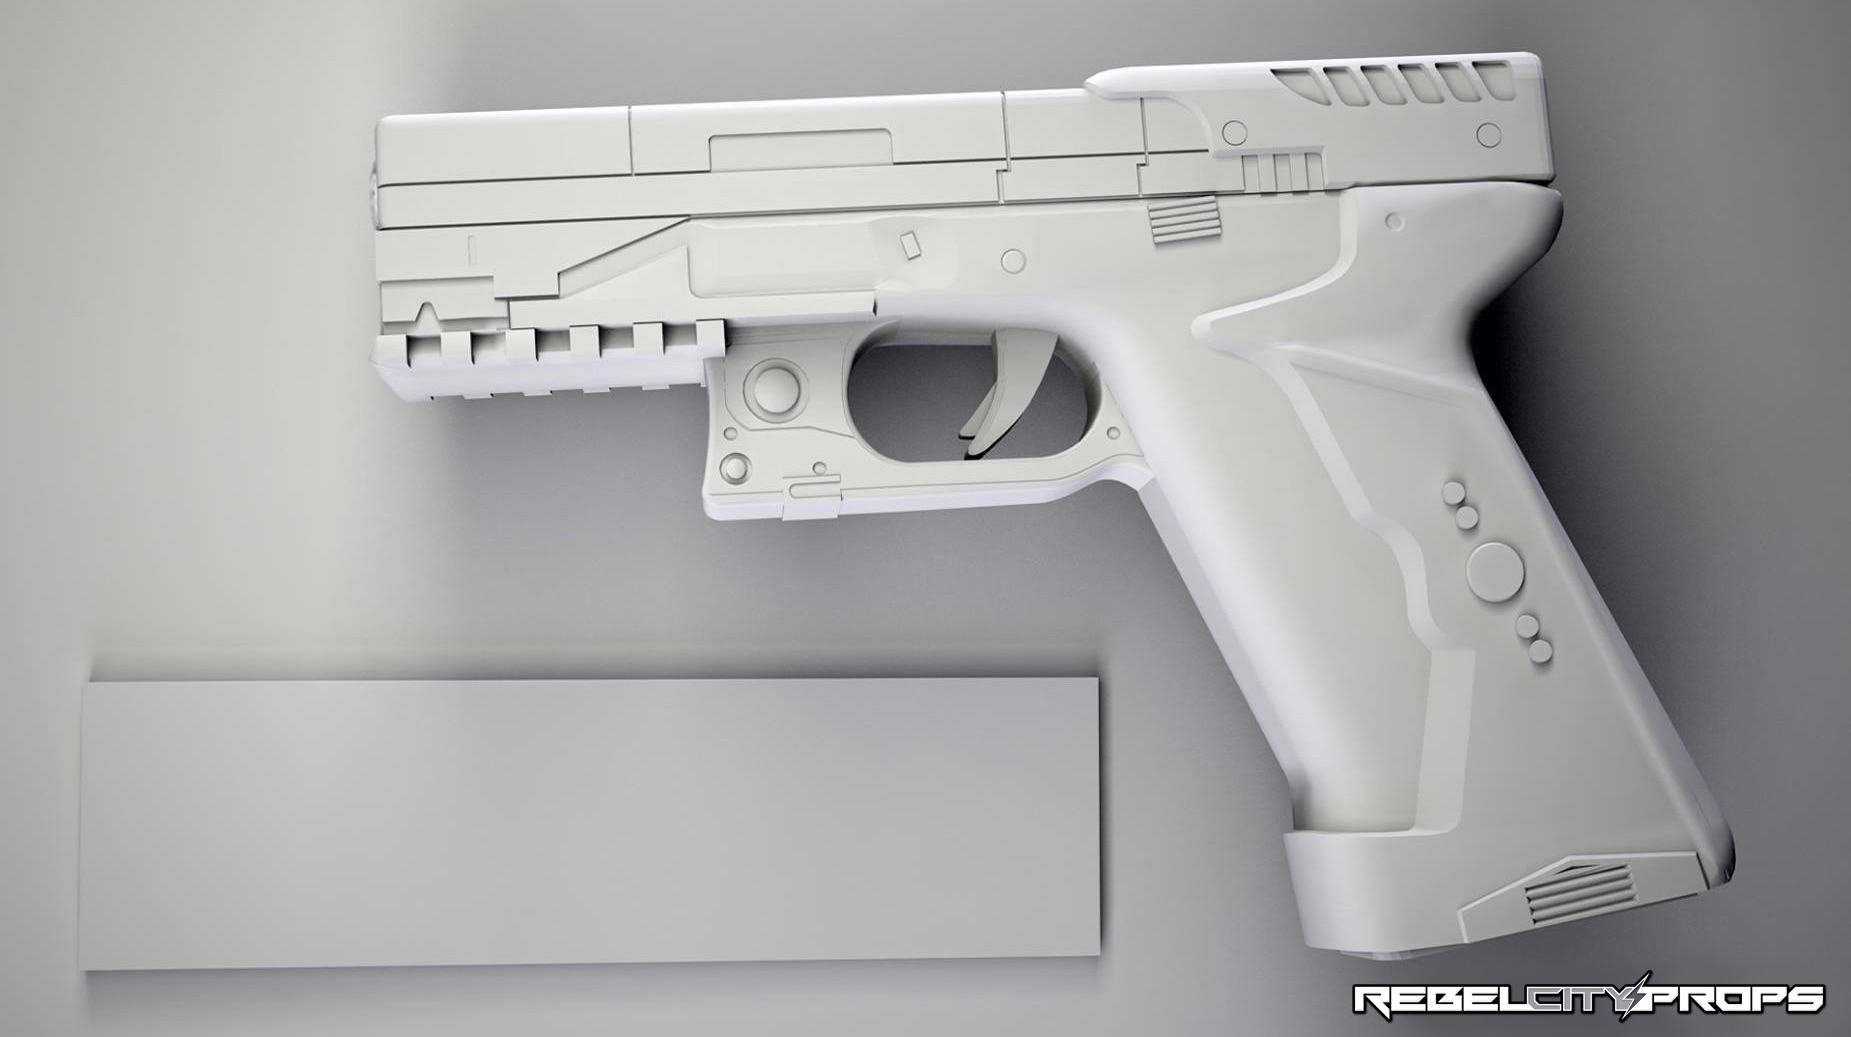 Major S Thermoptic Pistol 2017 Ghost In The Shell Complete Pg 4 Pic Heavy Rpf Costume And Prop Maker Community